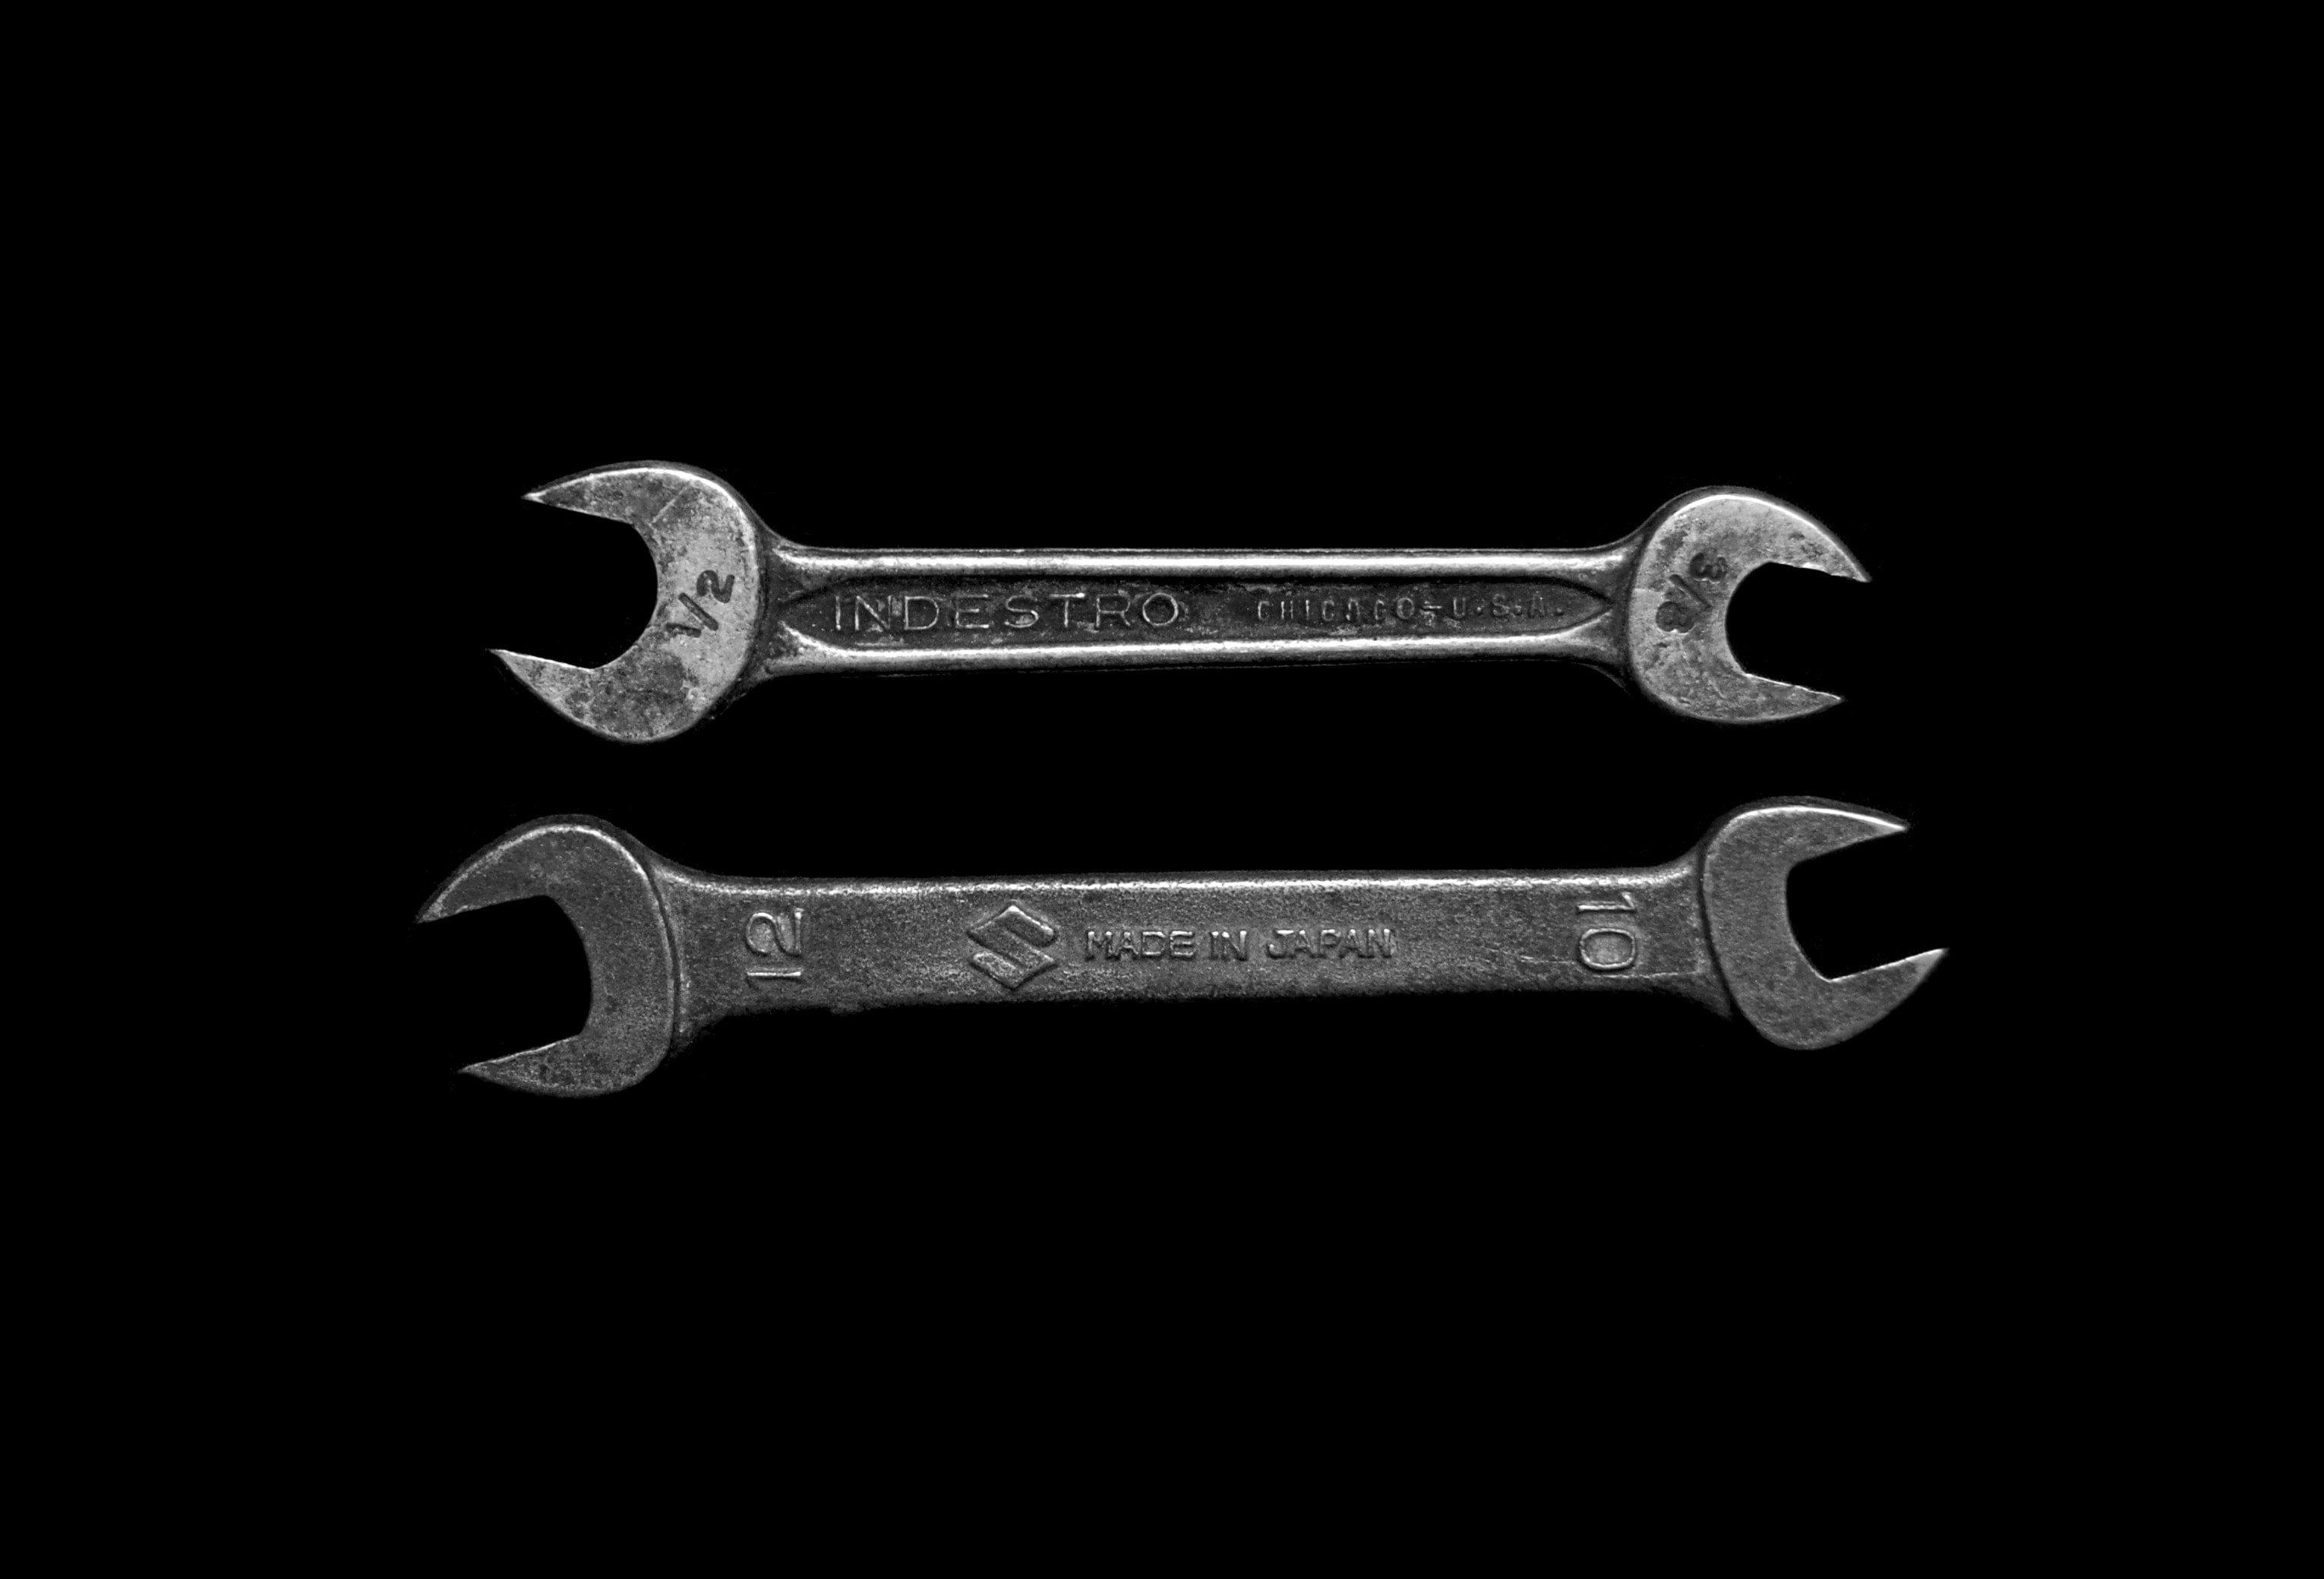 two gray wrenches